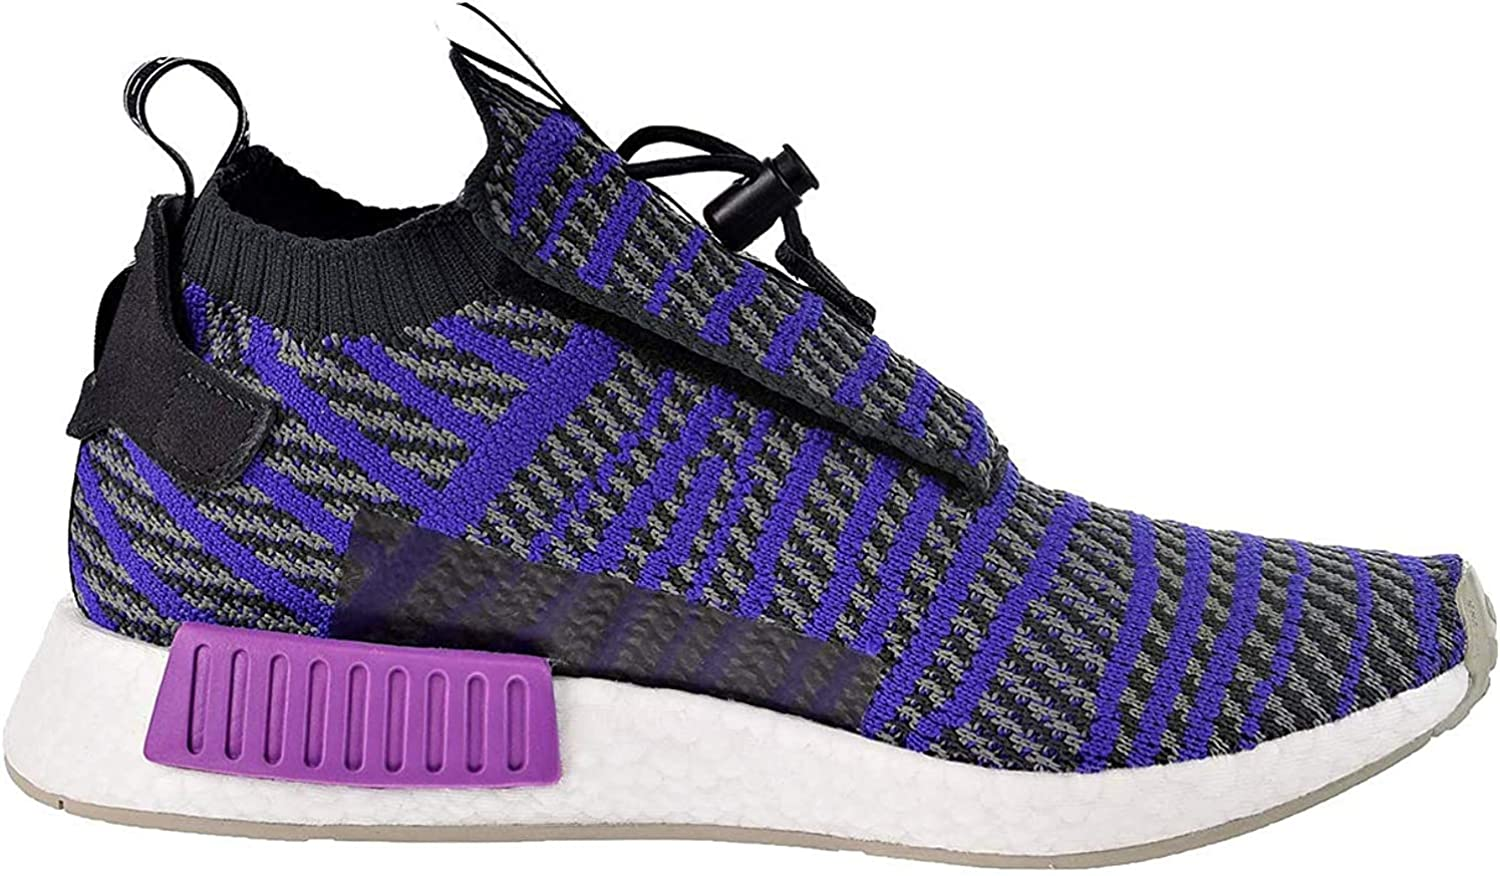 adidas Originals NMD_TS1 Primeknit Shoe - Men's Casual 12.5 Carbon/Energy Ink/Grey